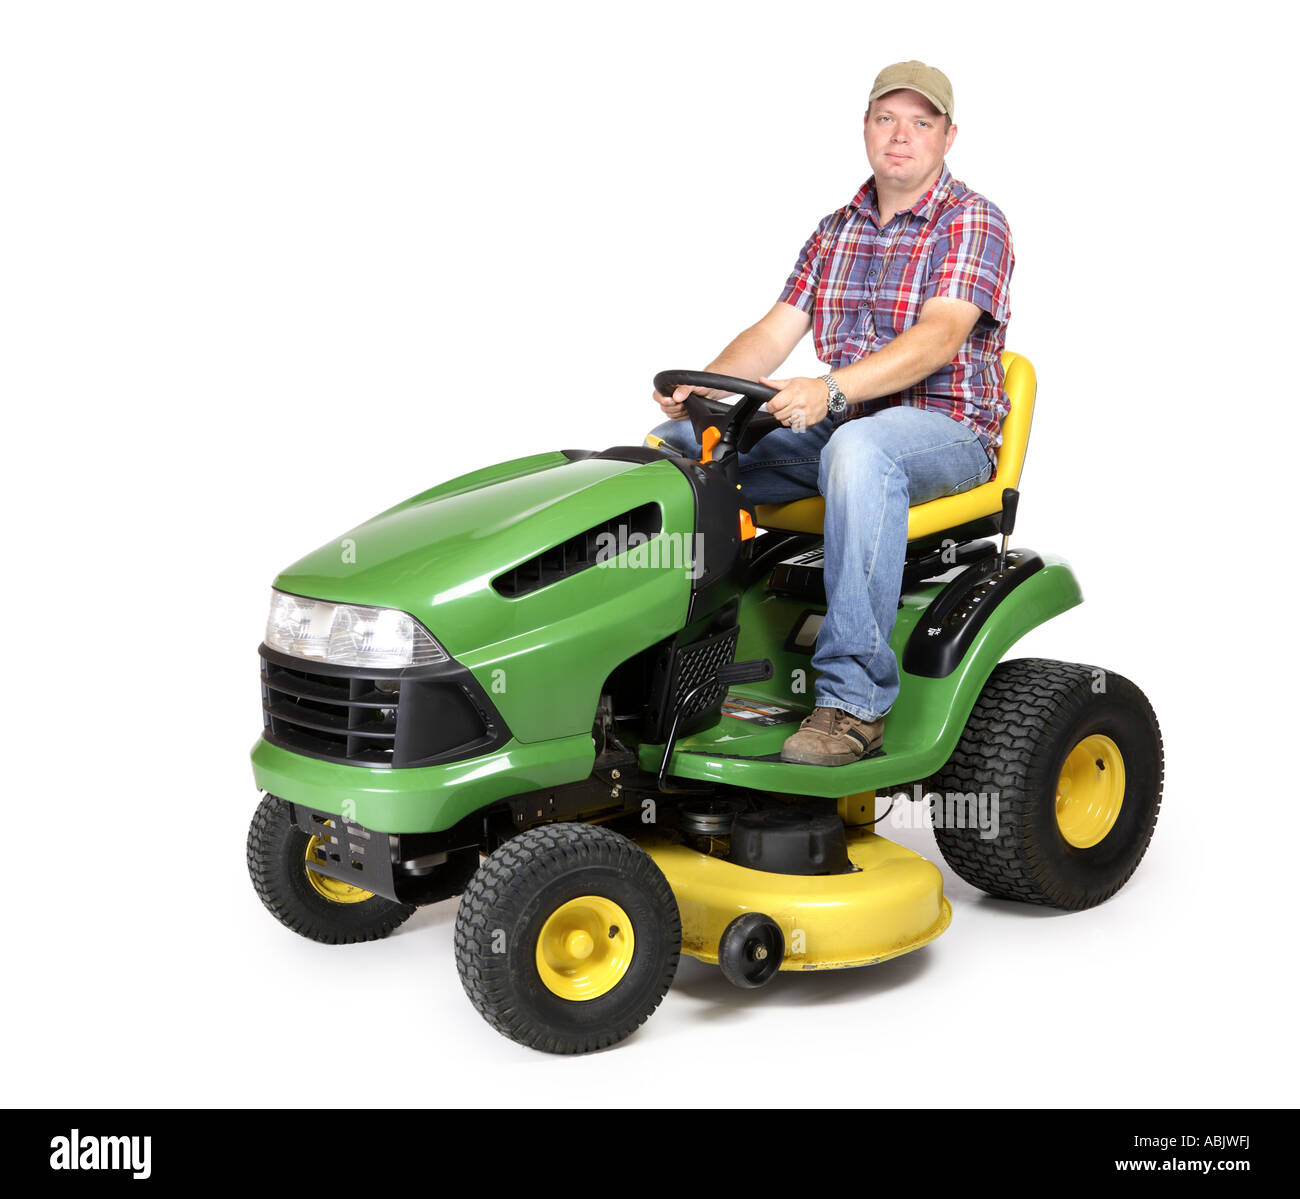 Lawn Tractor With Man Riding Cut Out On White Background